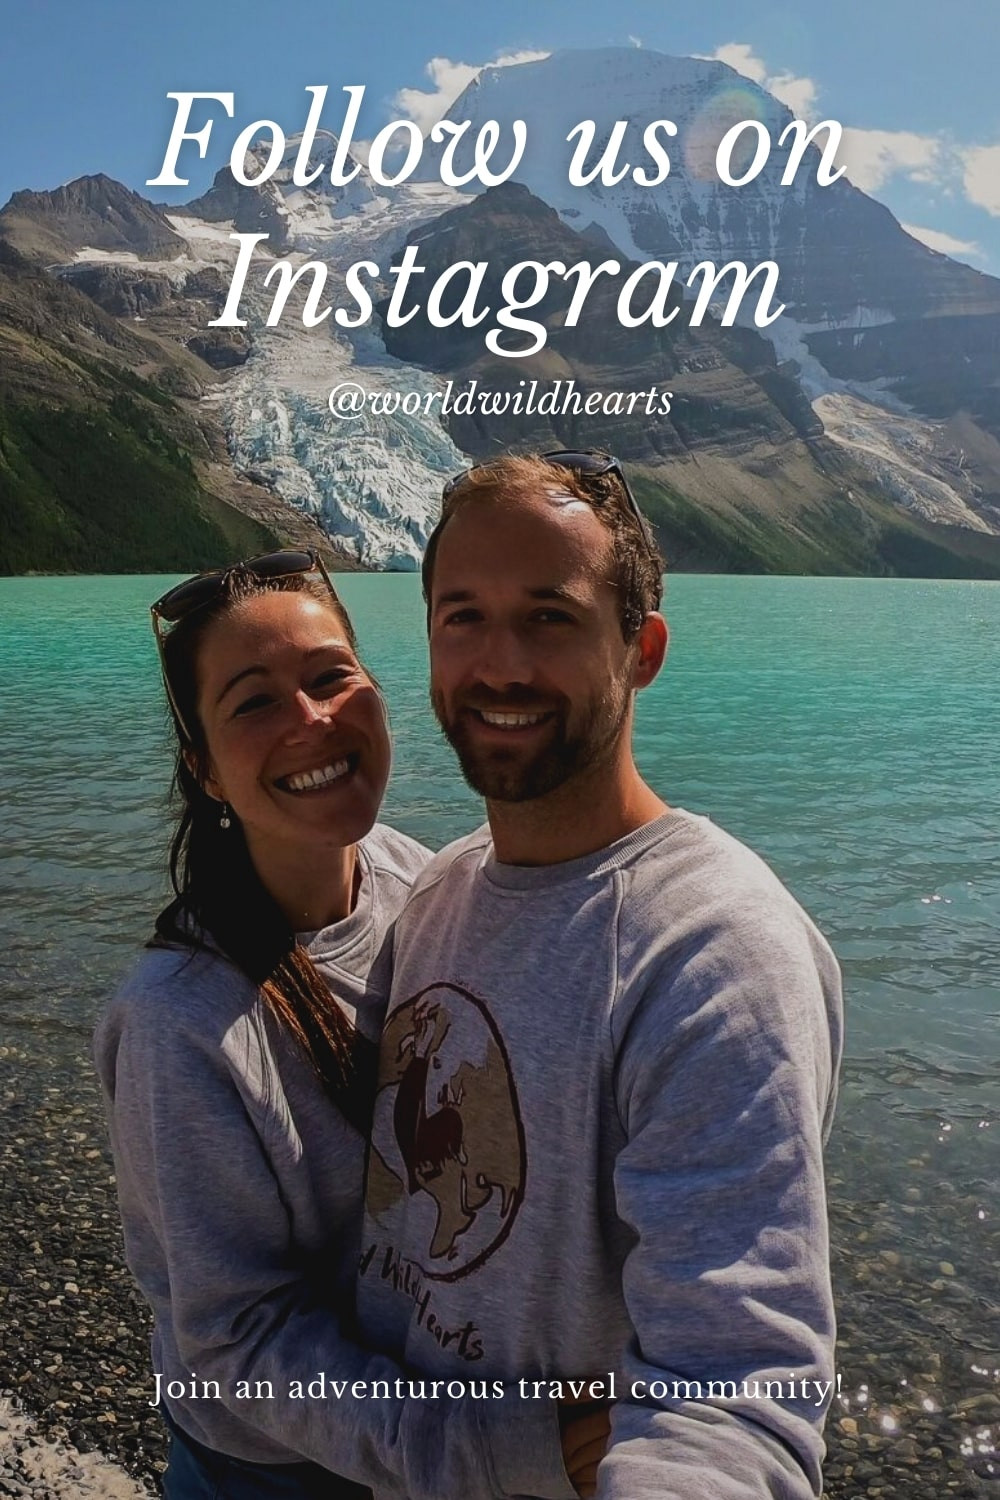 follow world wild hearts travel inspiration and apparel on instagram